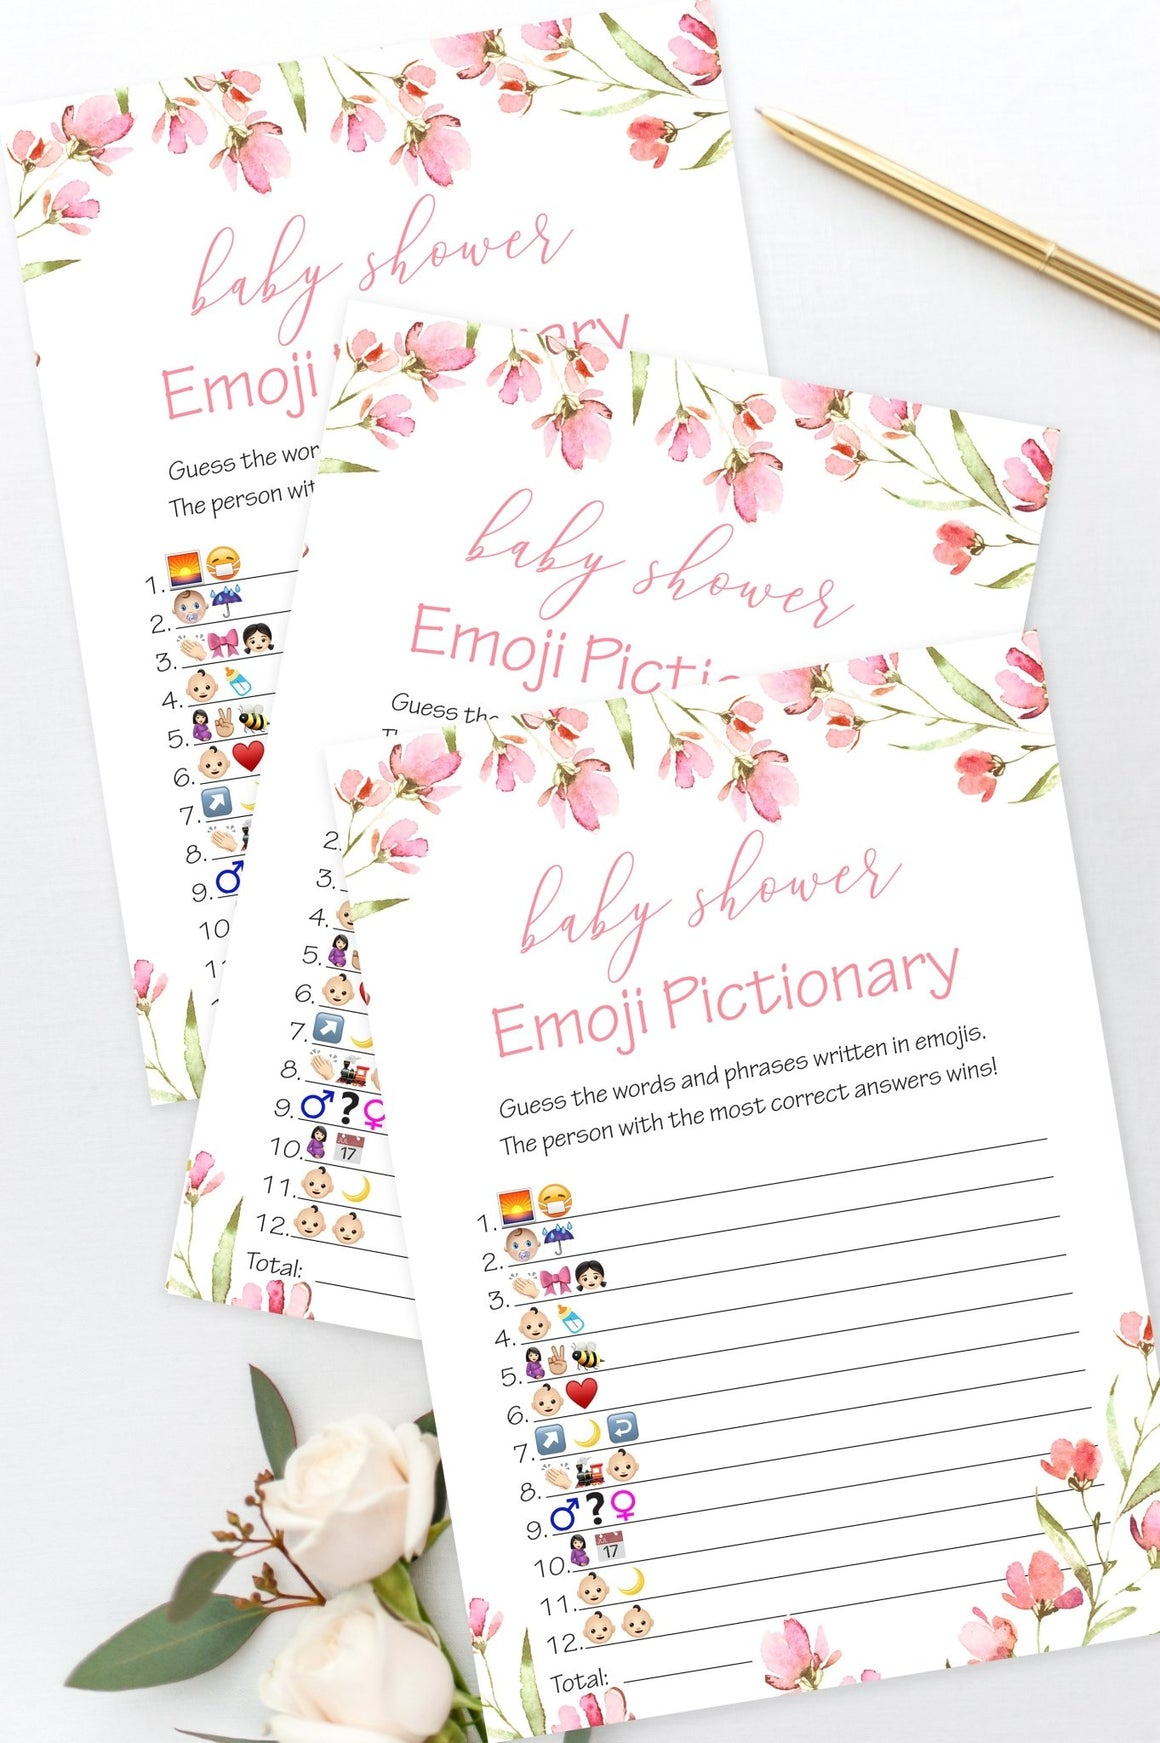 Baby Shower Emoji Pictionary - Spring Floral Printable - Pretty Collected